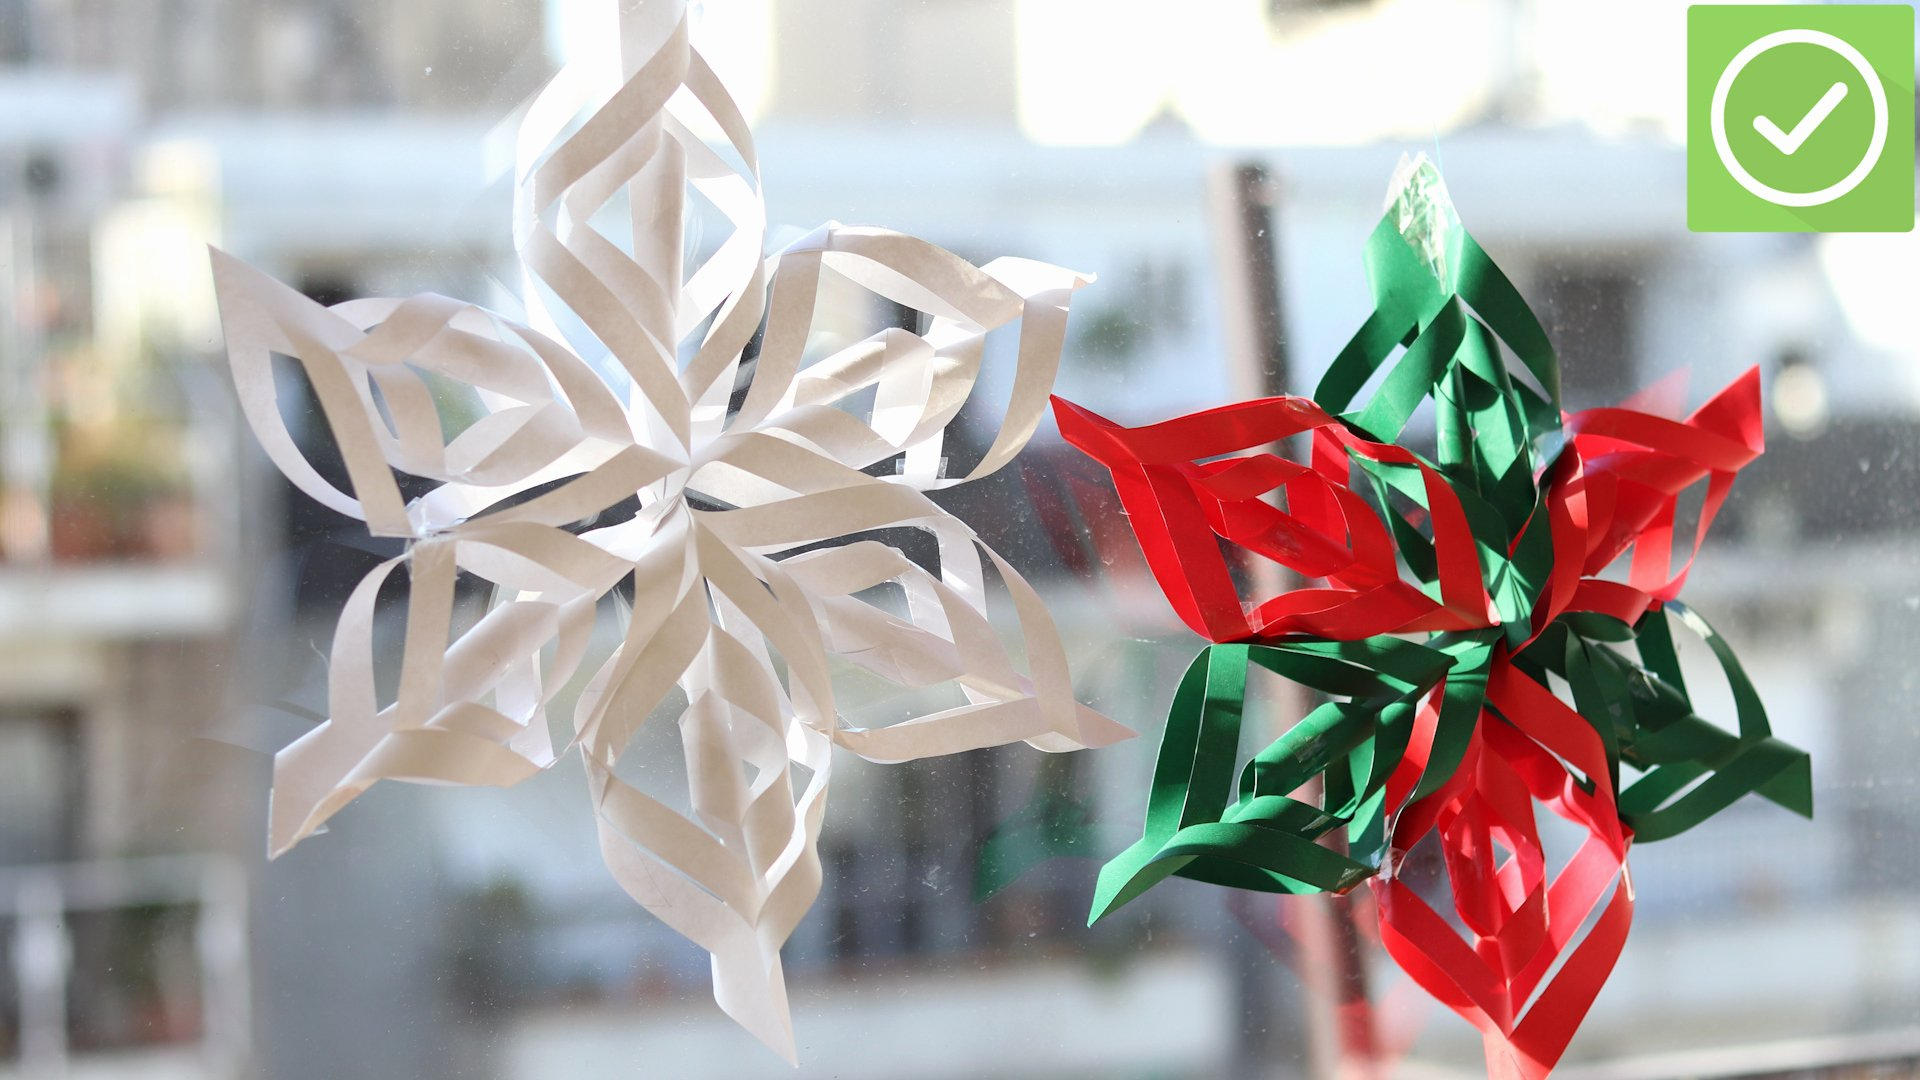 3 D Paper Snowflakes Luxury How to Make A 3d Paper Snowflake 12 Steps with